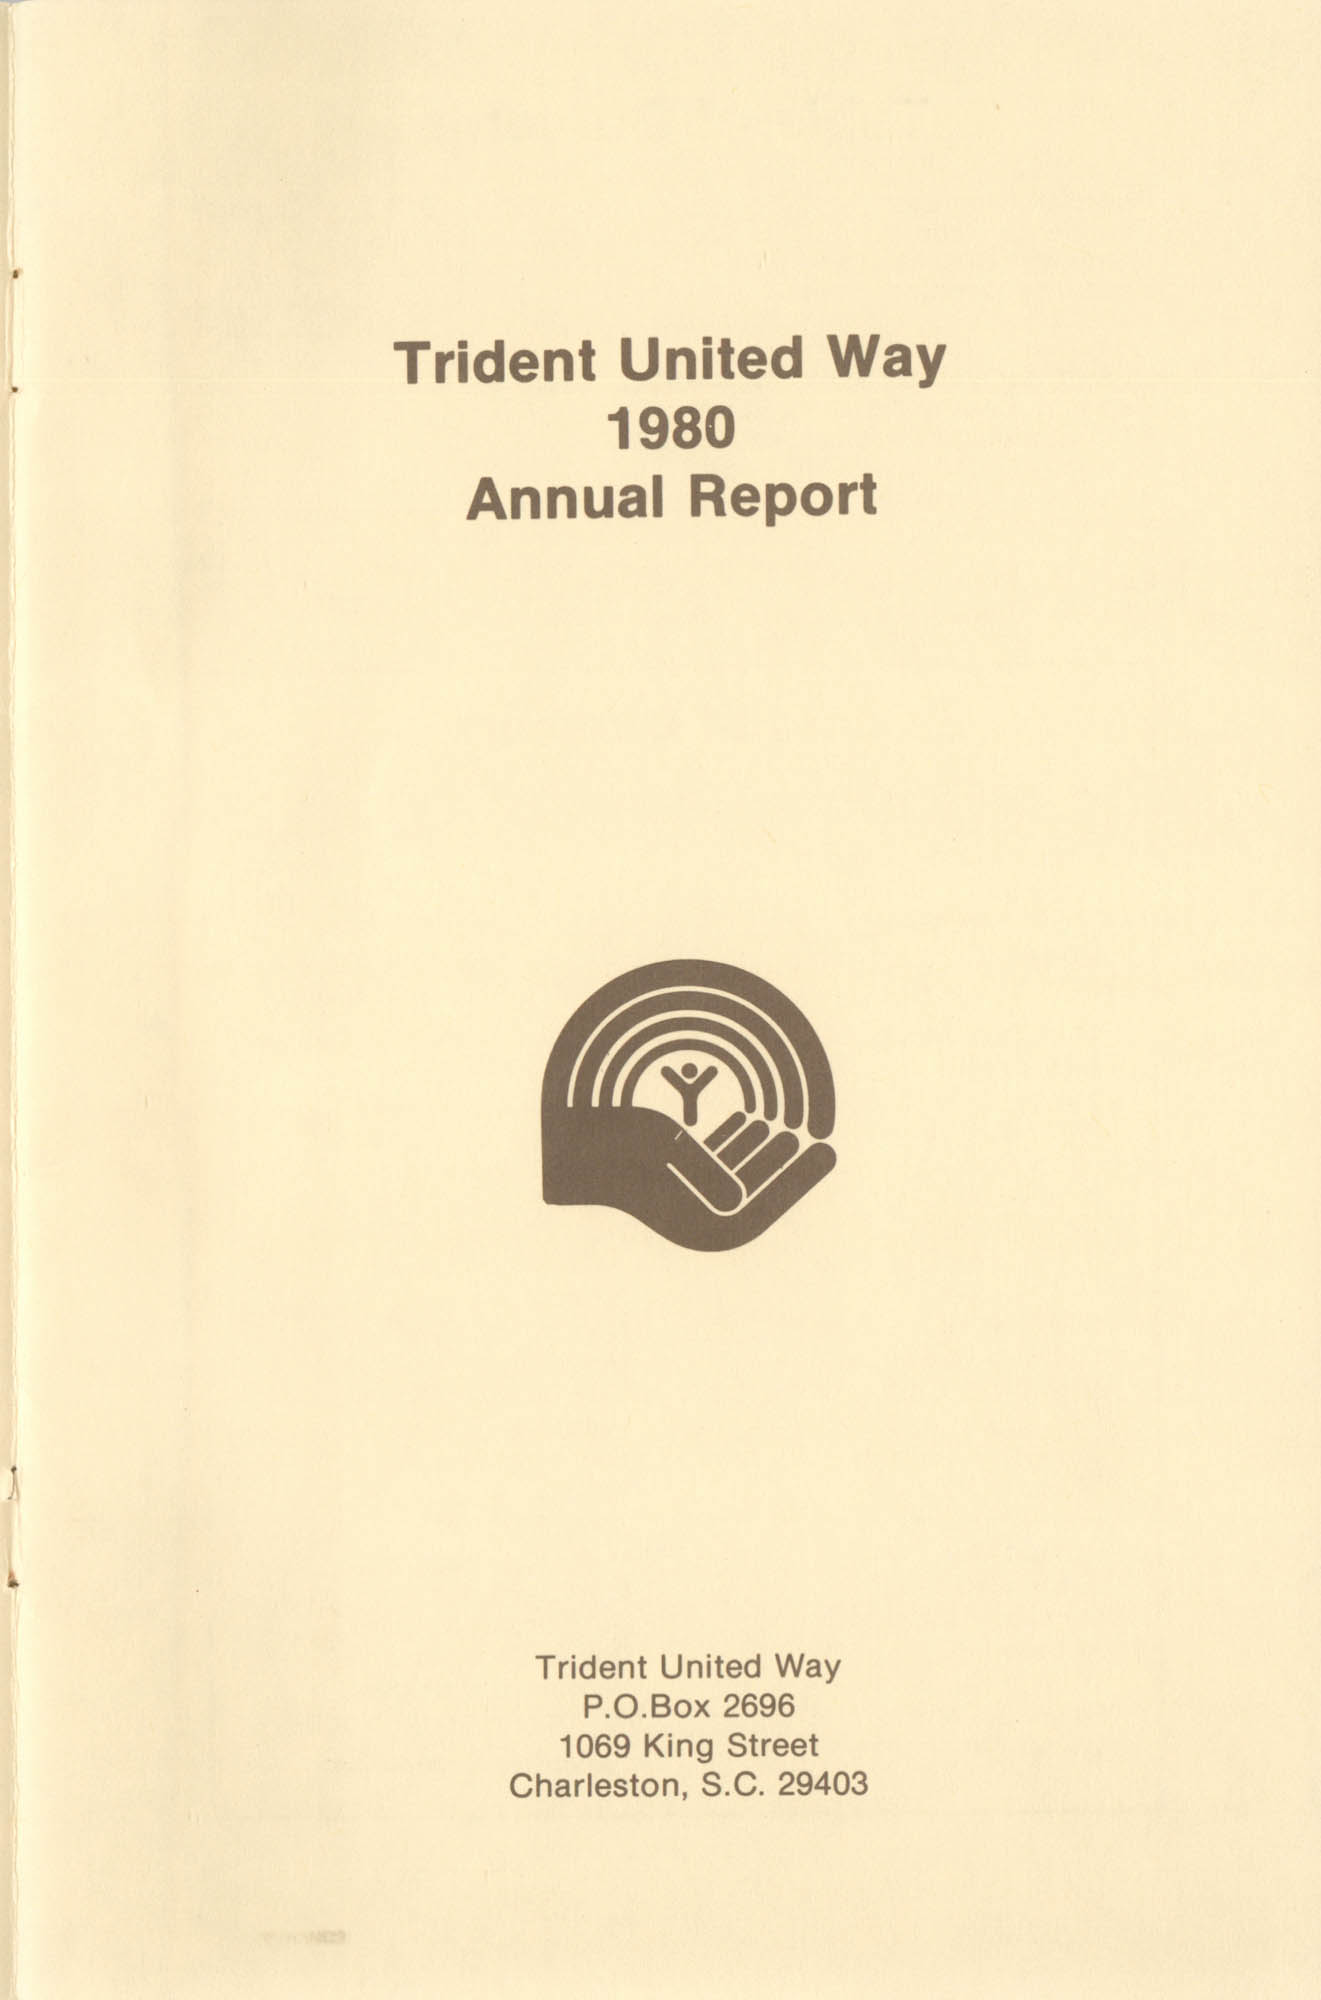 Trident United Way Annual Report, 1980, Title Page